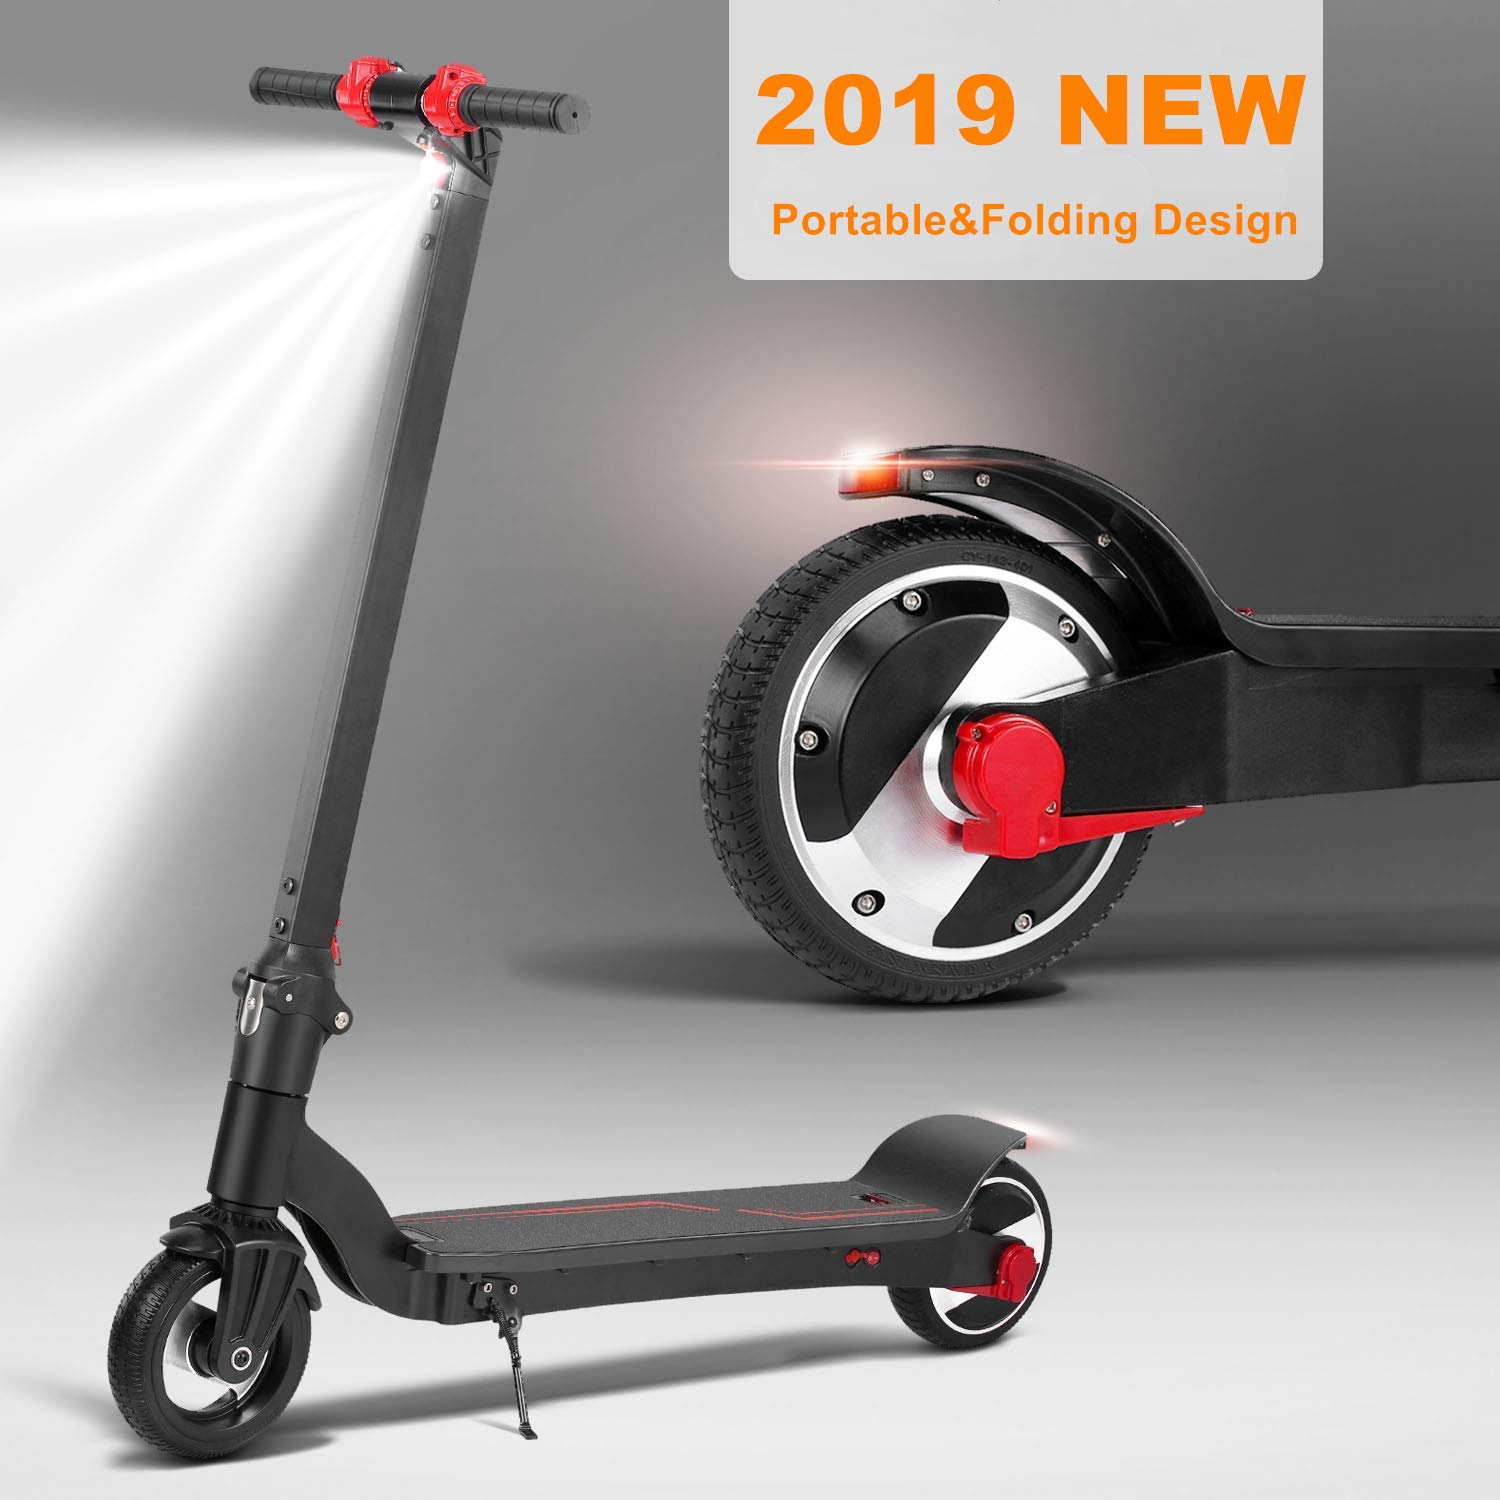 Speed up to 23Km//h 14MPH 13Km Long Distance 6.2-9.3 mile Remote Battery Light Weight Electric Scooter Adjustable Height Foldable City E Scooter Suitable for Adults /& Teenagers /& Commuters